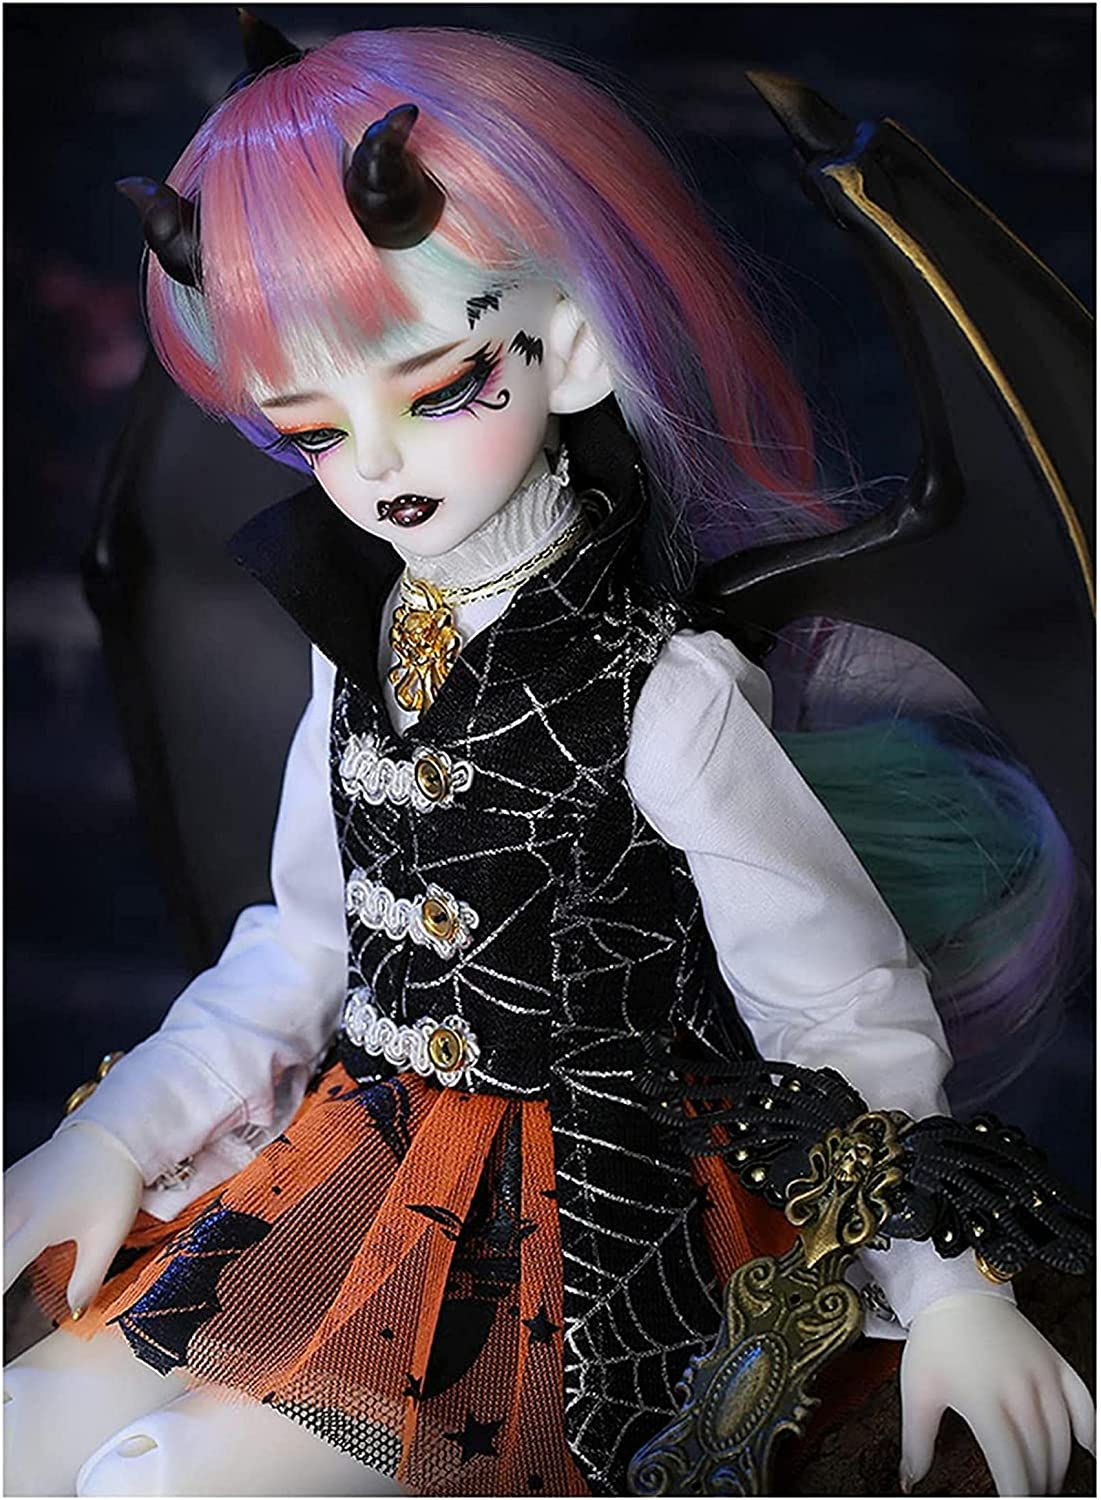 1 4 BJD Doll 16 Inch Customized Changed Oakland Mall 40% OFF Cheap Sale and Makeup Dr Can Dolls